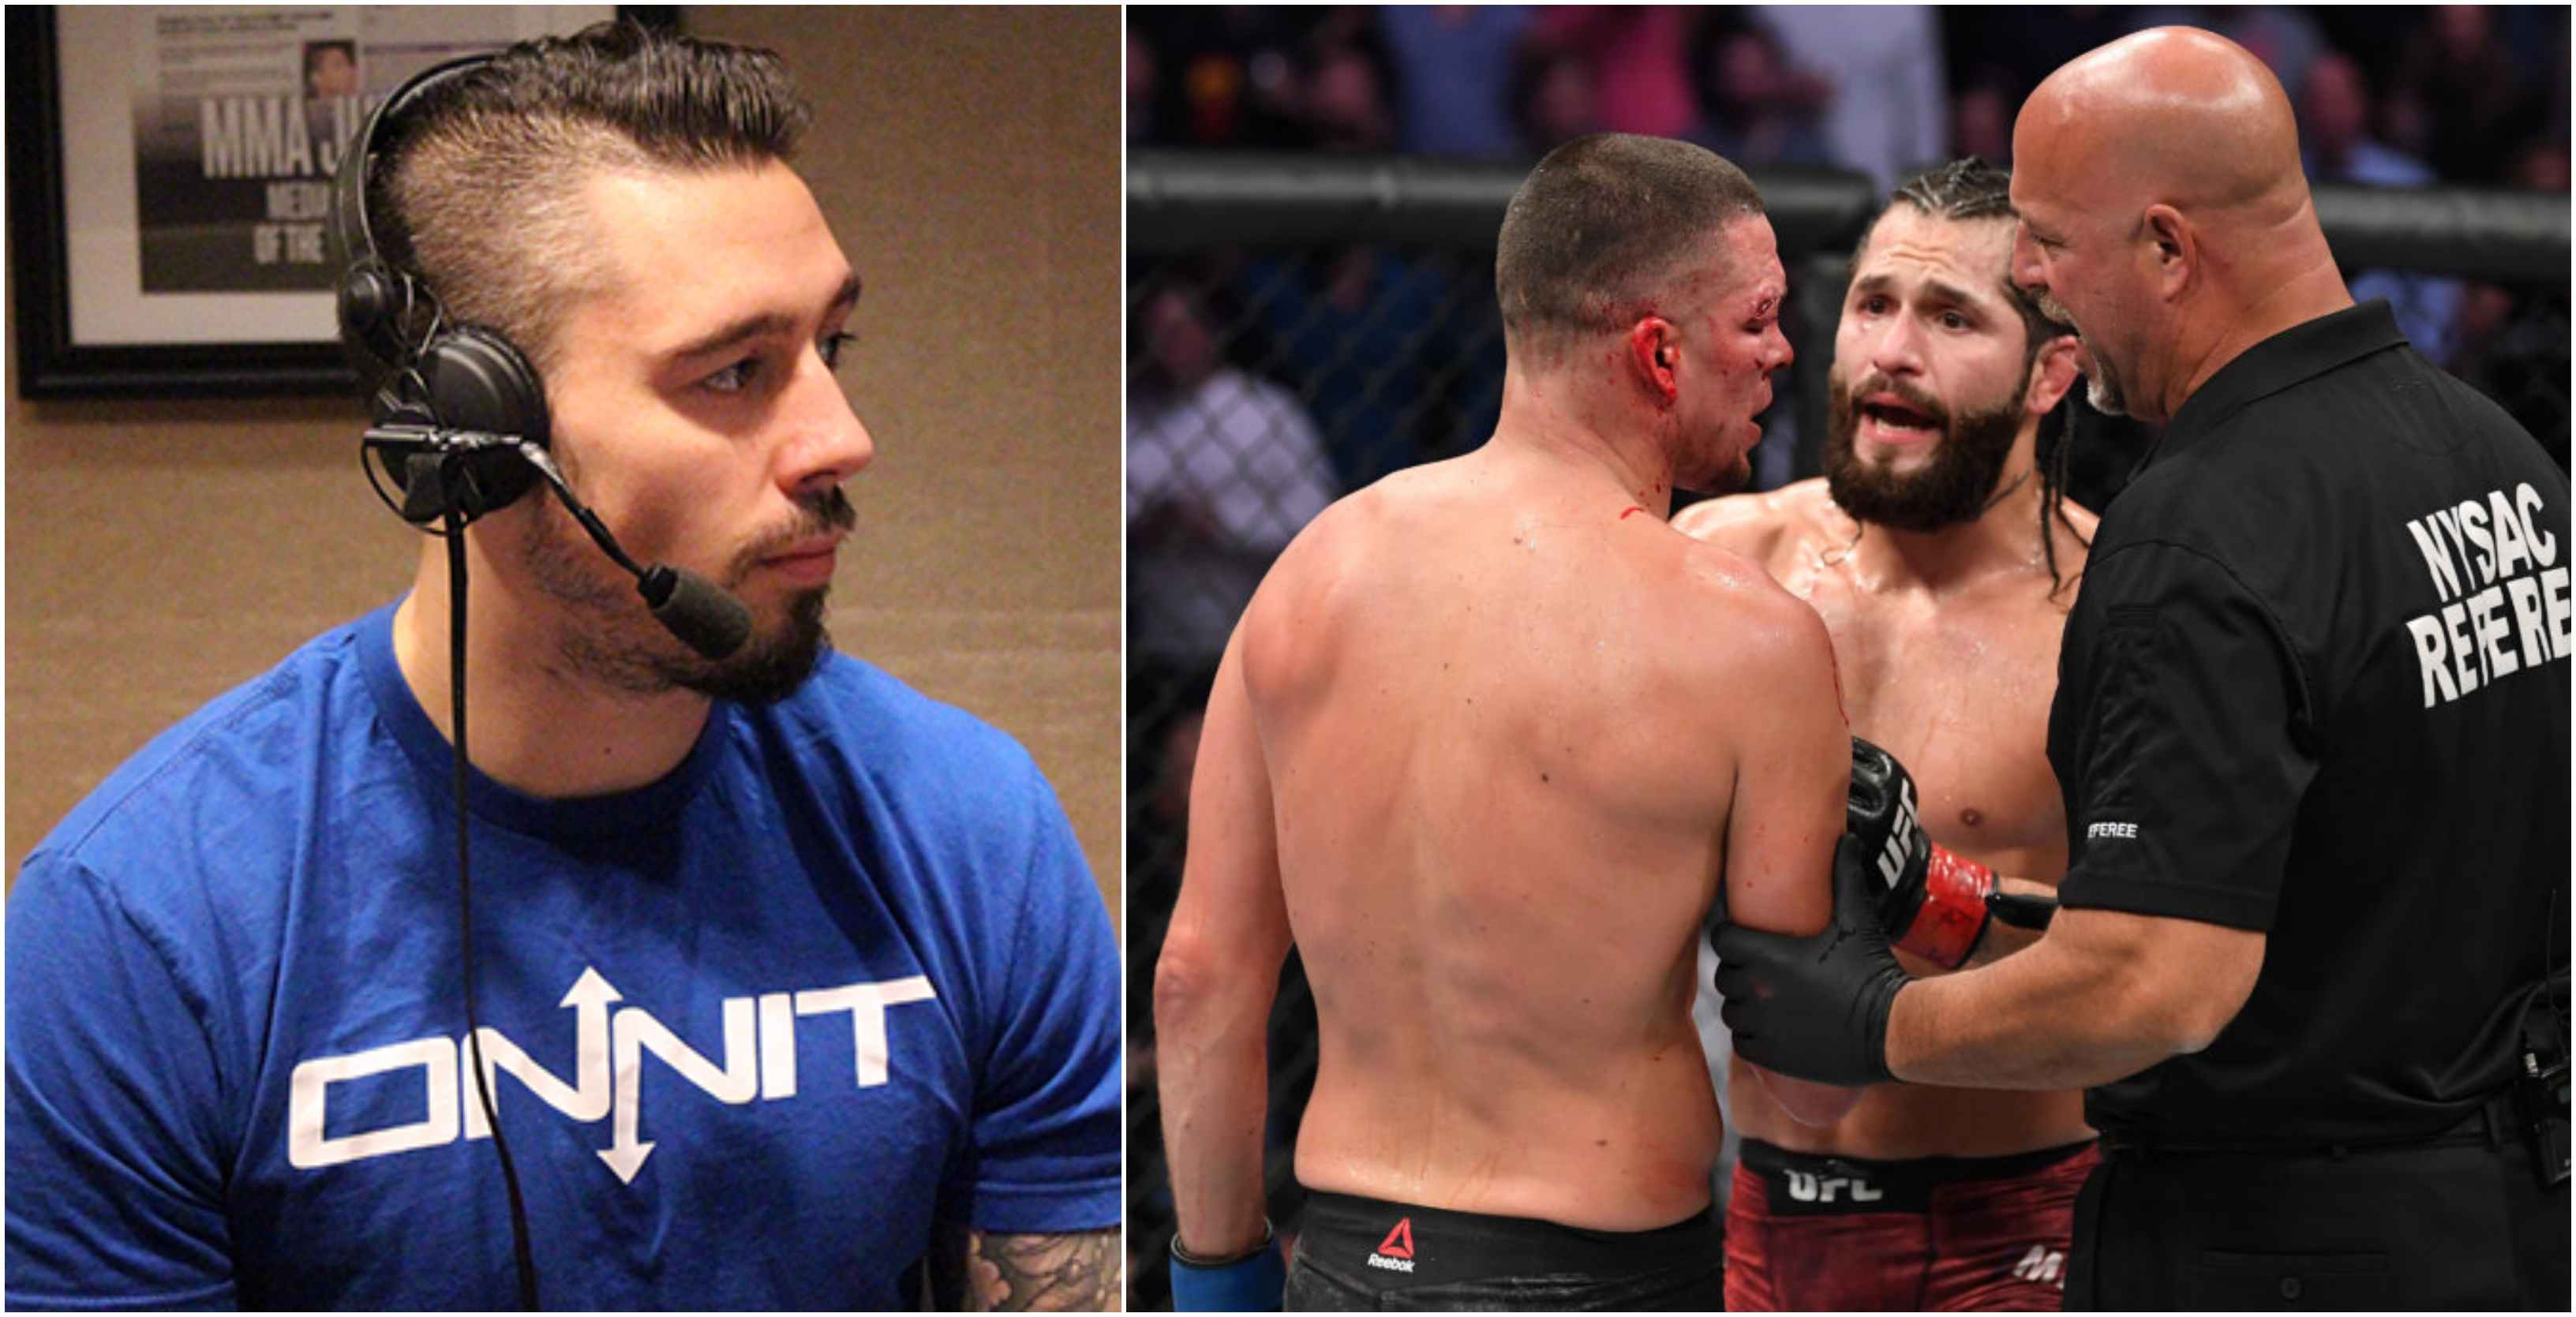 MMA analyst Dan Hardy gives his post-fight analysis on Masvidal vs Diaz - Masvidal